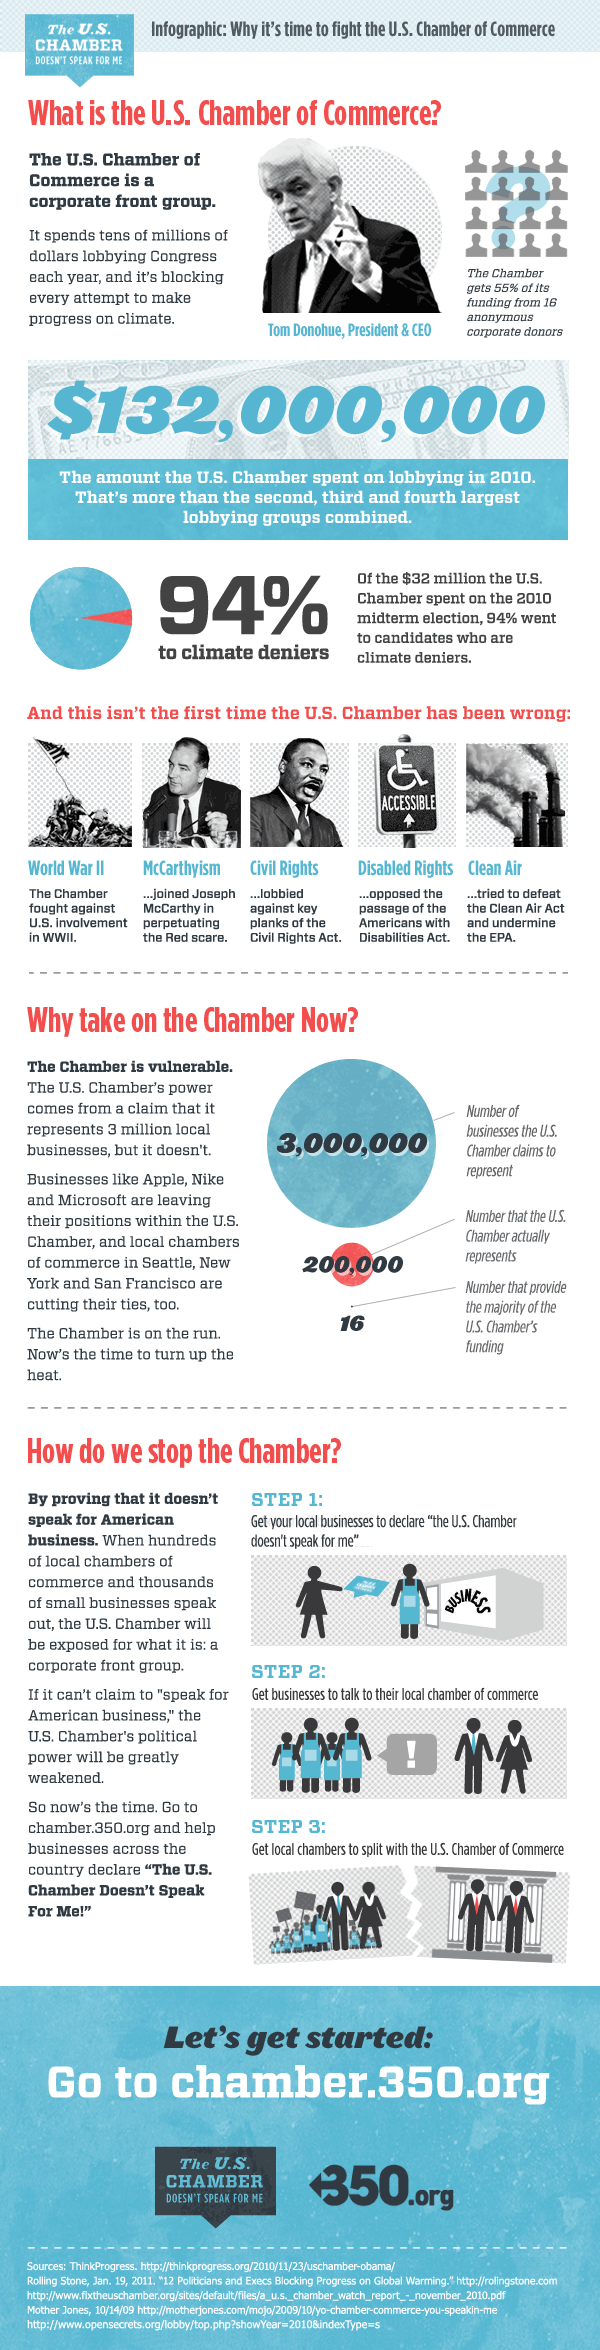 Infographic: Why it's time to fight the U.S. Chamber of Commerce